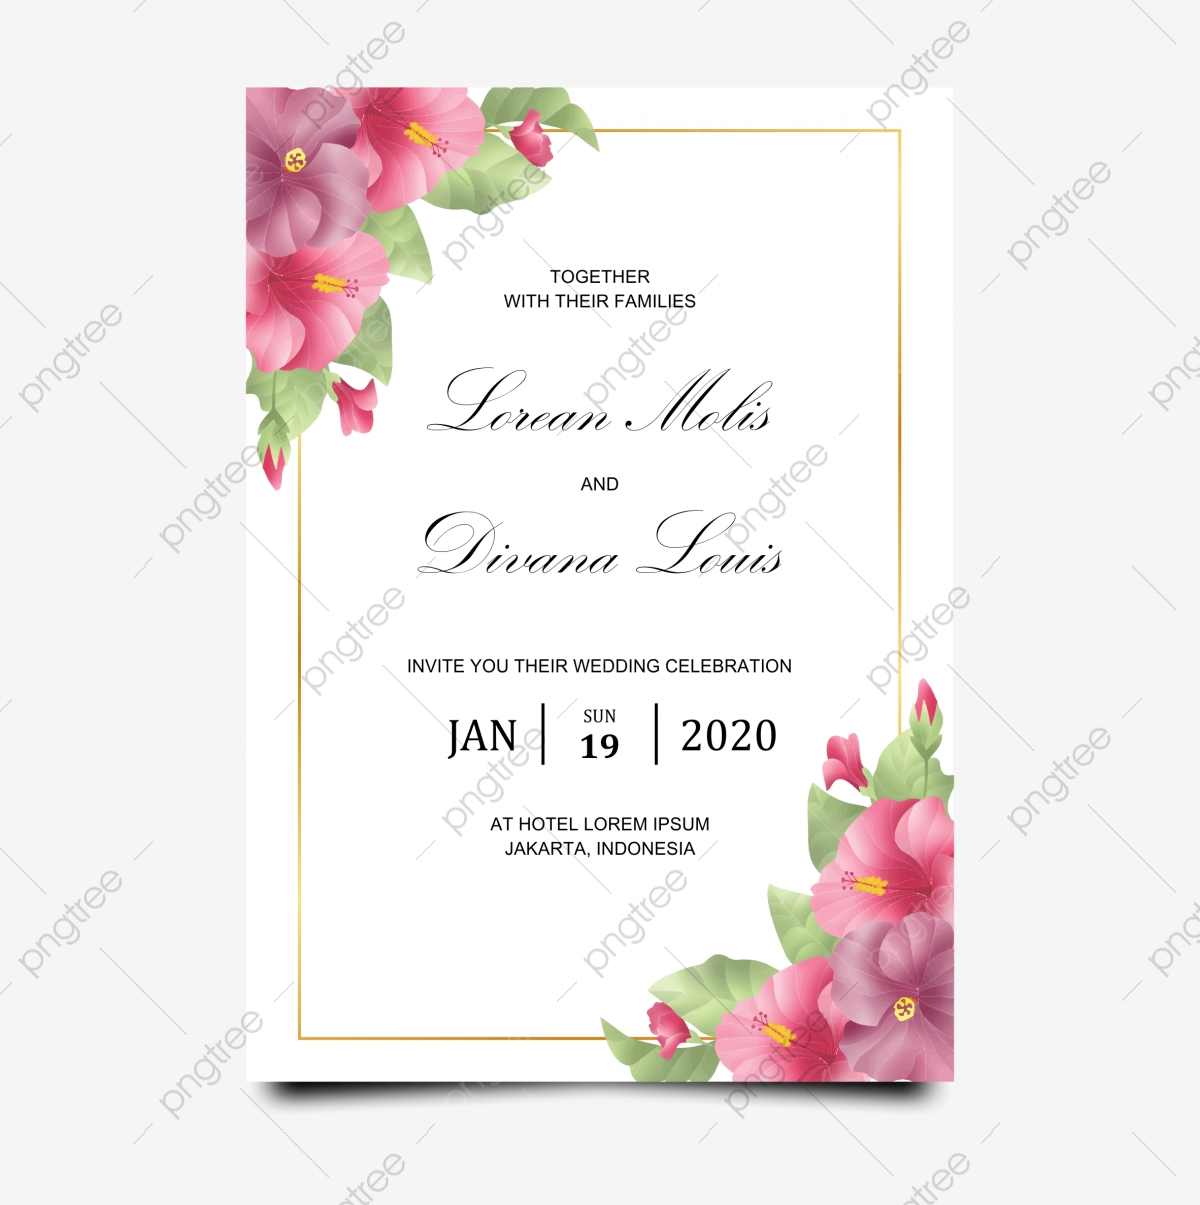 Wedding Invitation Template With Flowers, Wedding, Wedding Card